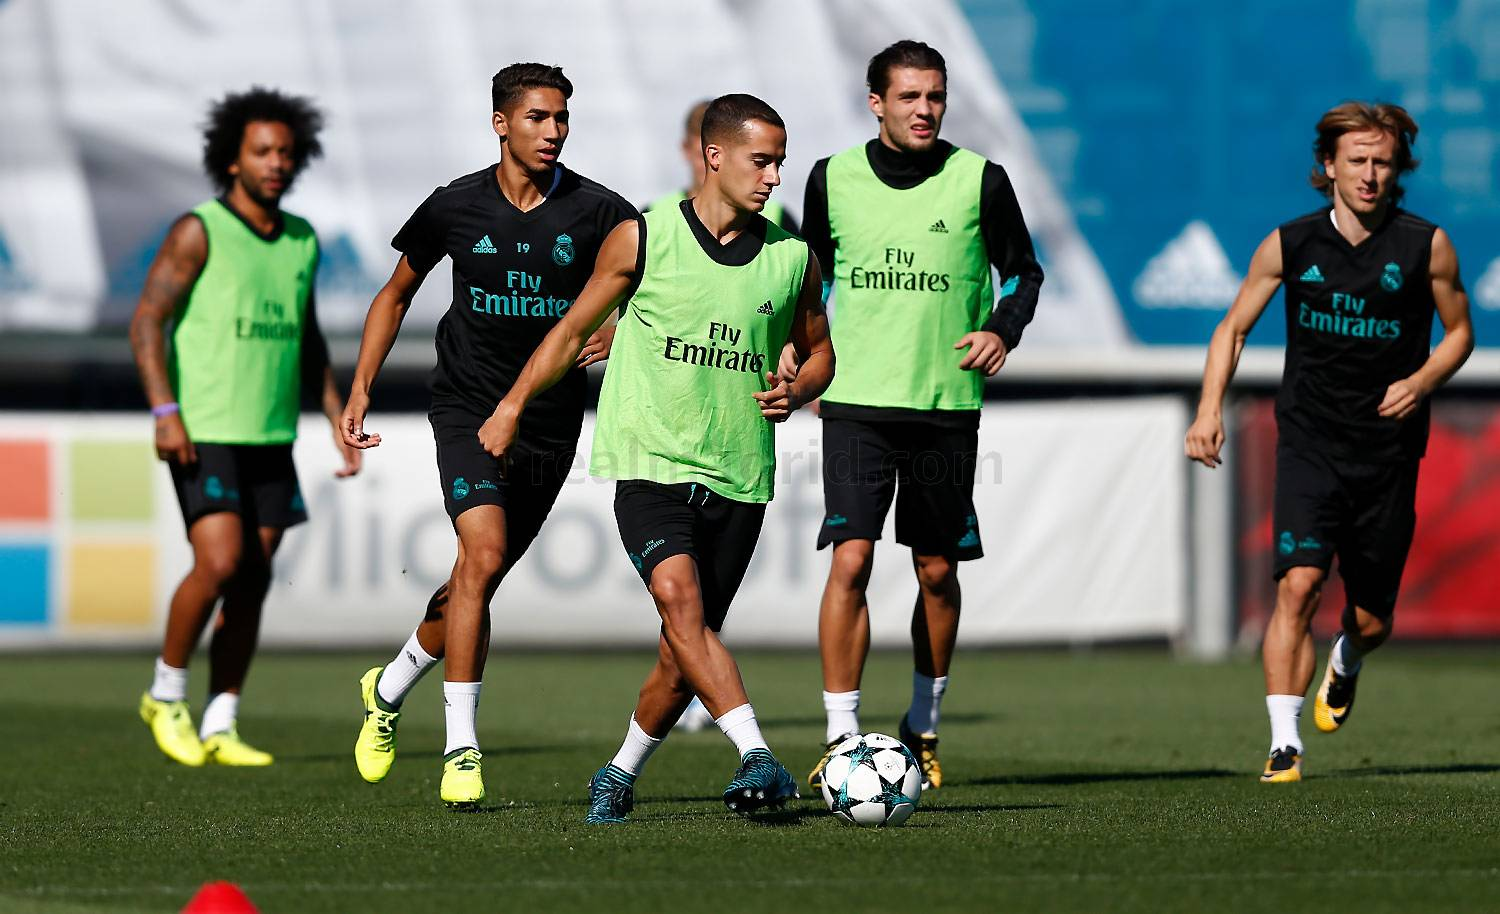 Real Madrid - Entrenamiento del Real Madrid - 11-09-2017